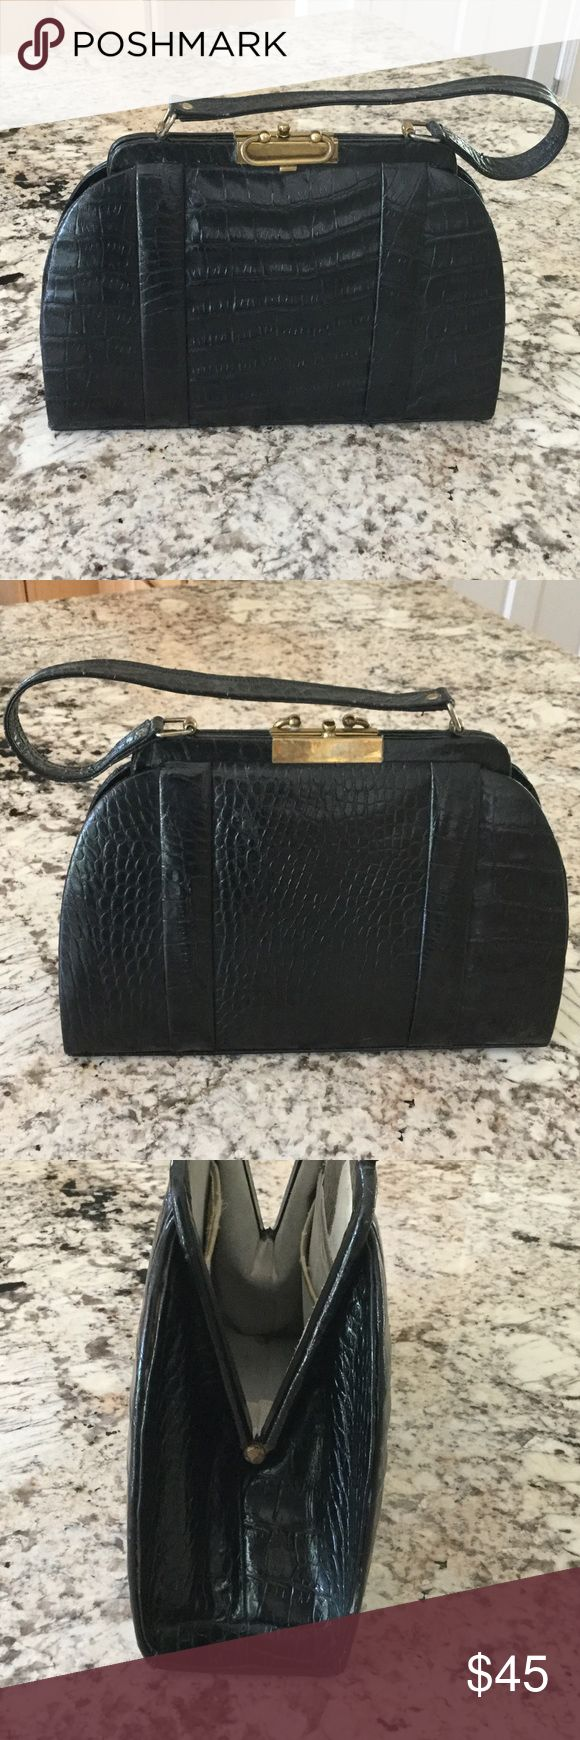 """Vintage Gold Coast alligator handbag. Really fun vintage bag that is showing some wear on the inside but the outside is in very good condition. The bag is 12"""" long, 3 1/2"""" wide and 8"""" tall. The strap is 13"""" long. gold coast Bags"""